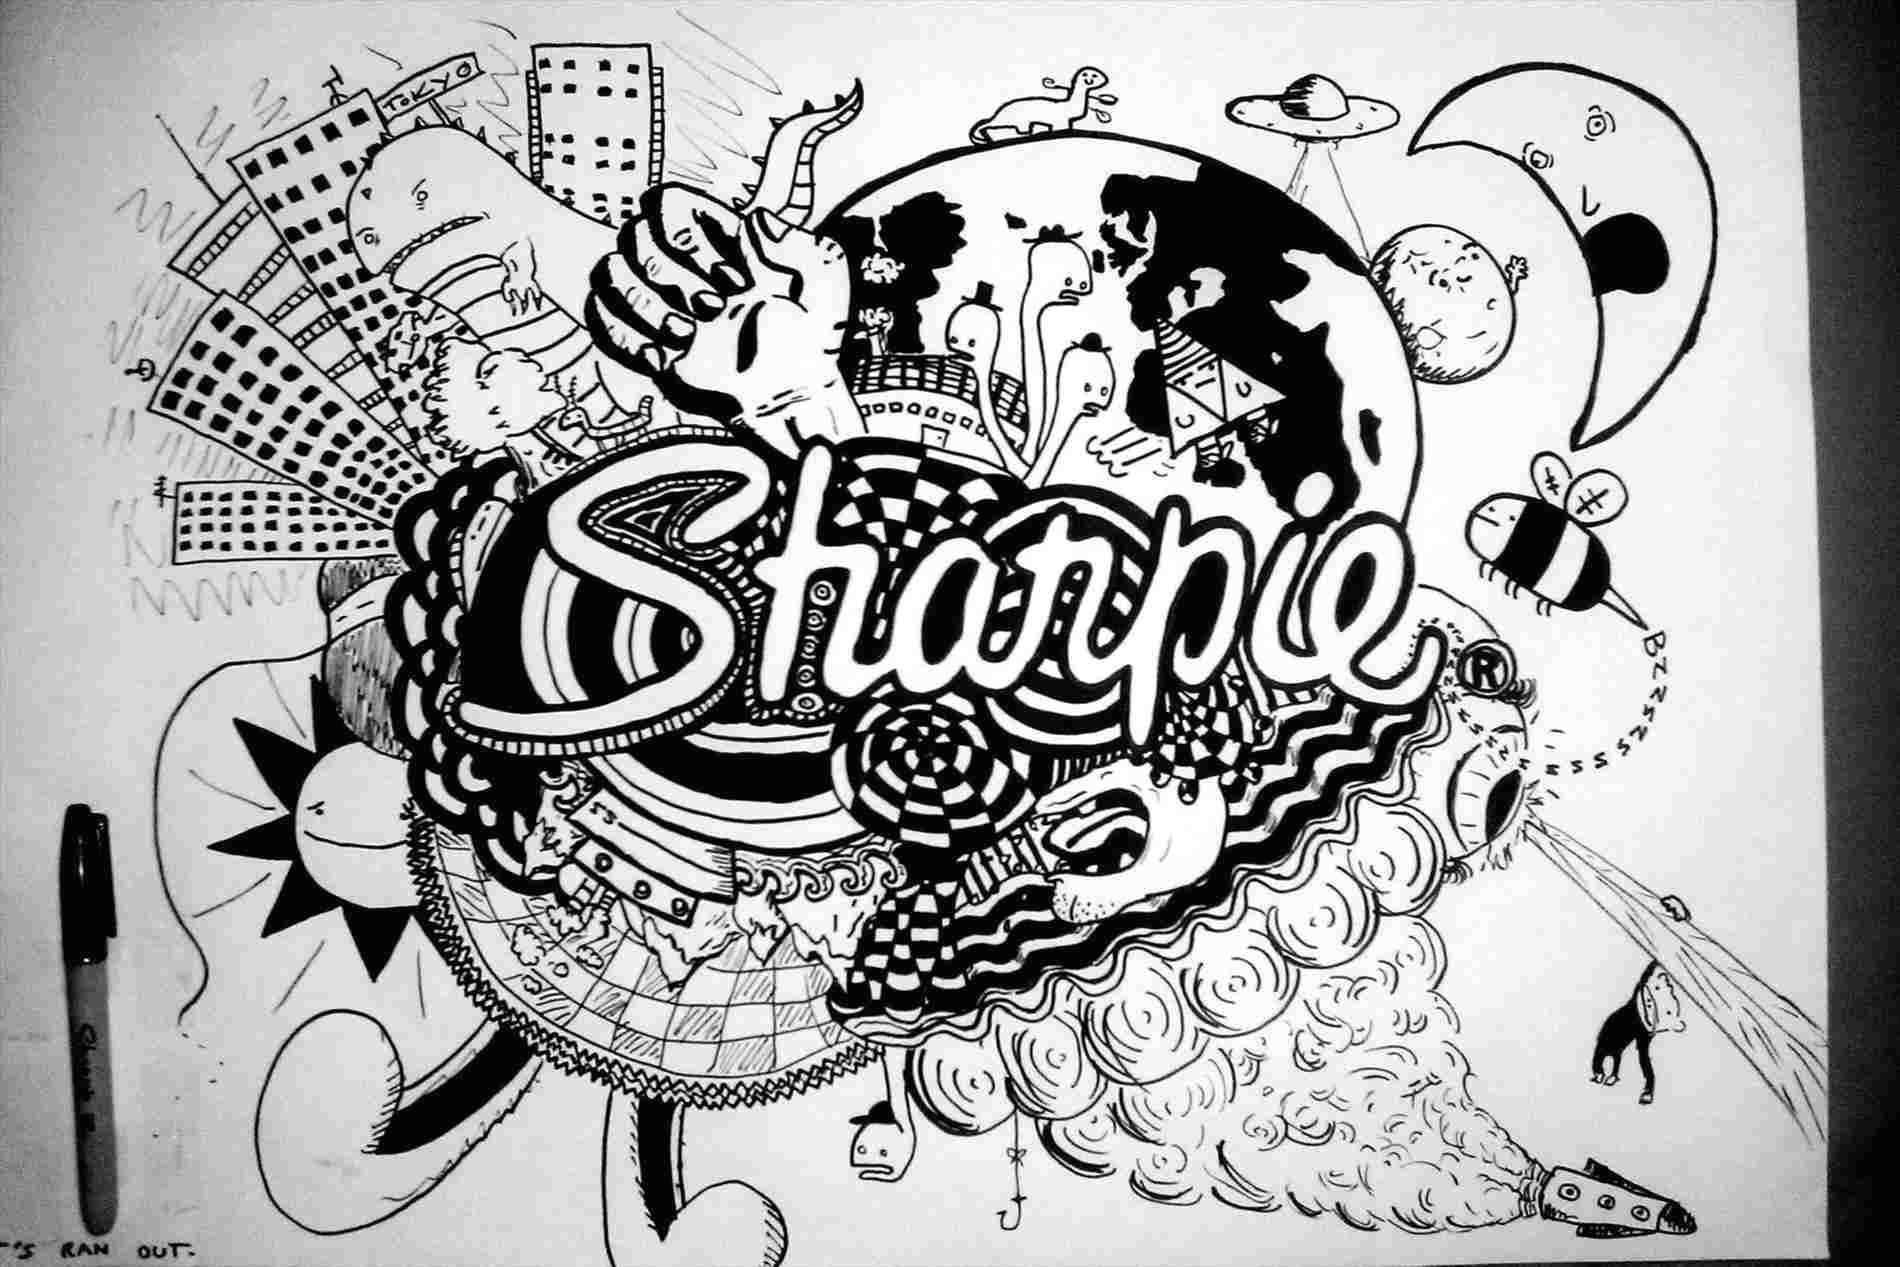 sharpie pictures result for cool things ing pinterest rhpinterestcom flower zentangle sf my marker art and doodles flower how to draw sharpie pictures zentangle sf my jpg